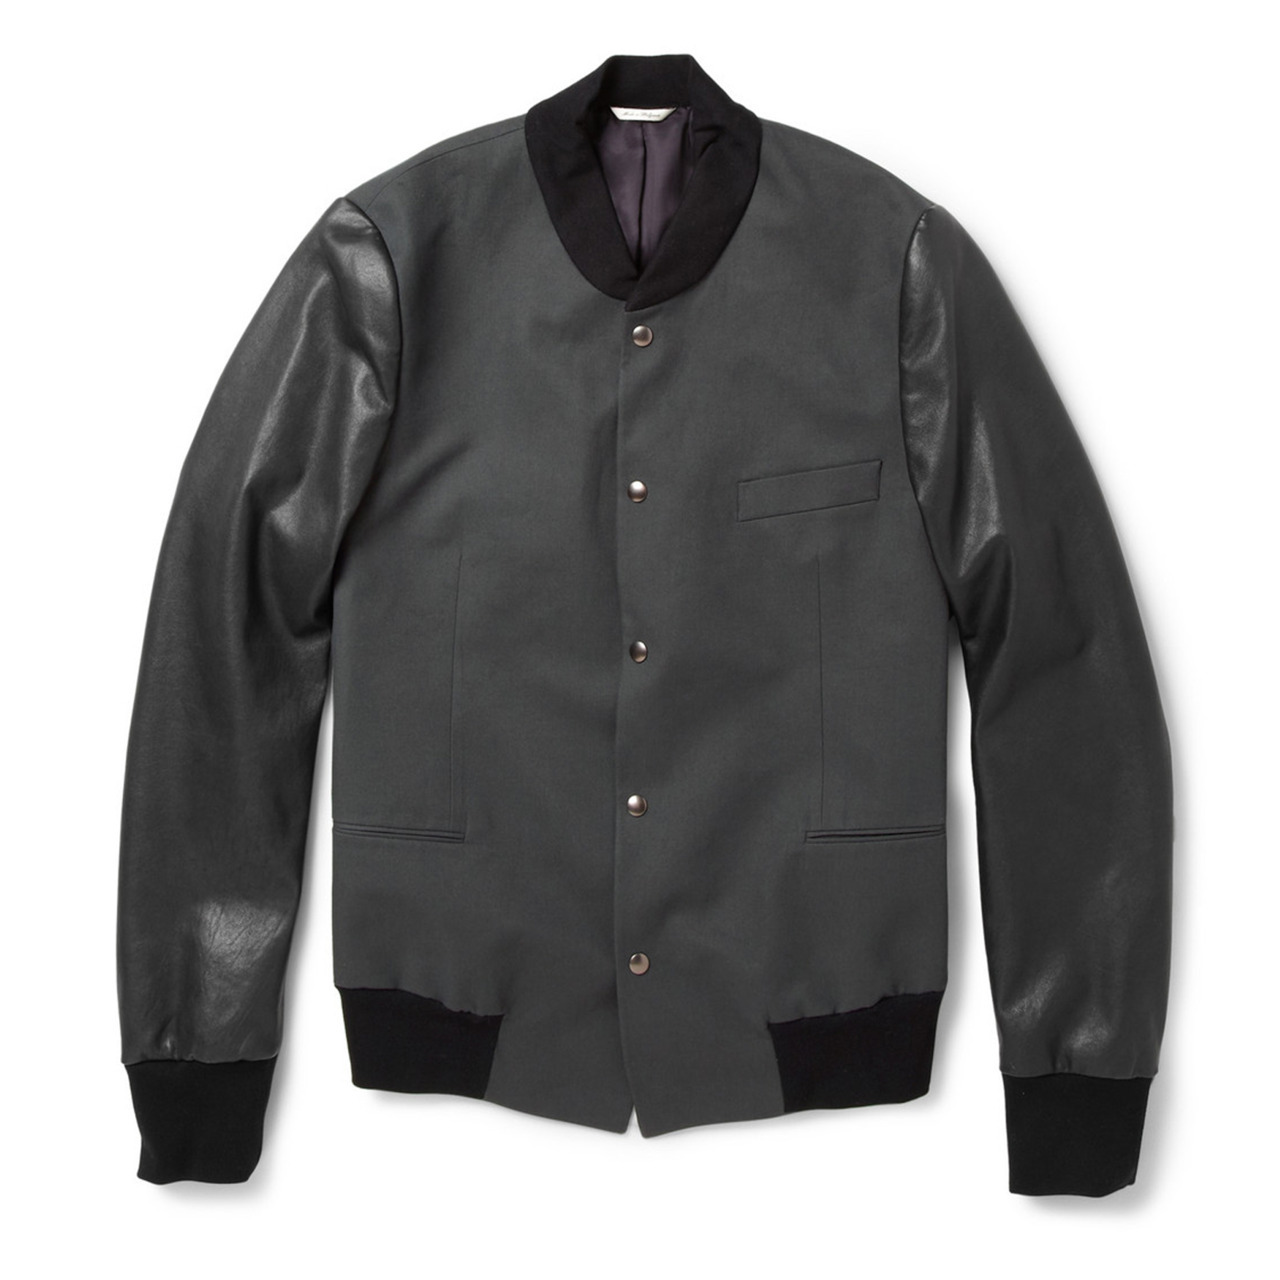 Take your look into a whole new (Ivy) league with this Paul Smith varsity jacket, designed exclusively for MR PORTER